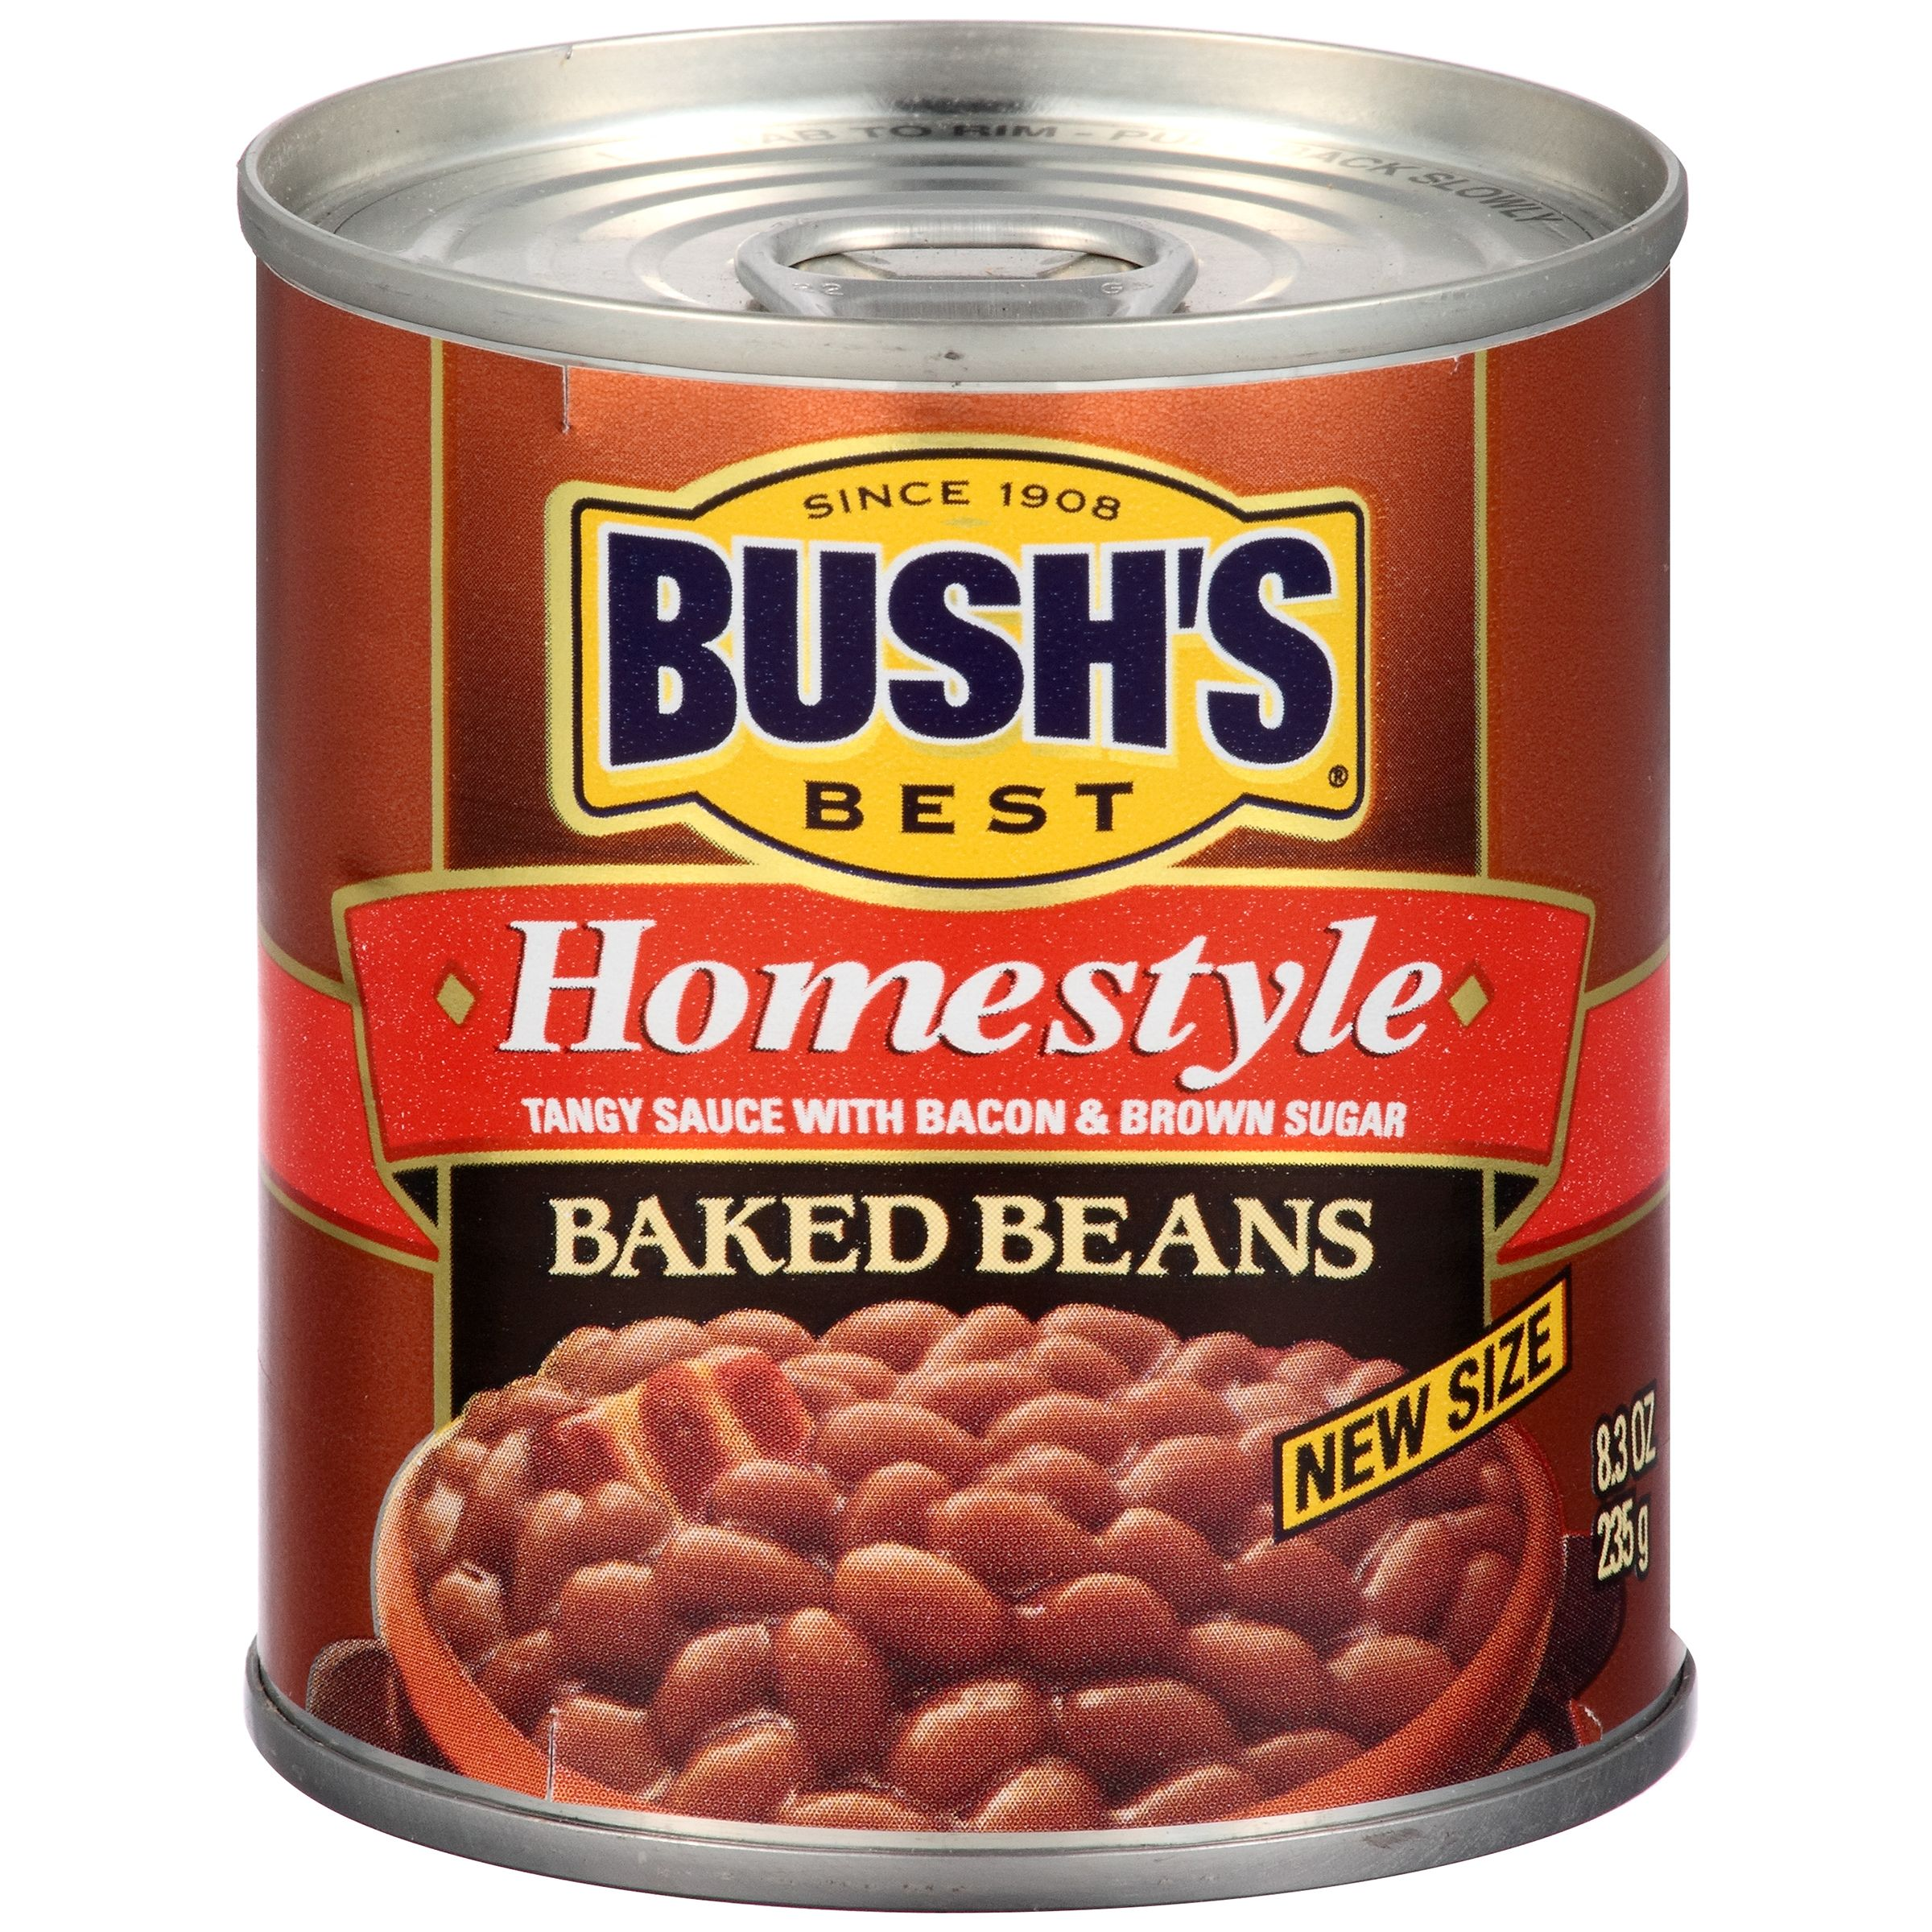 Bush's Best Homestyle Baked Beans 8.3 oz. Can by Bush Brothers & Company